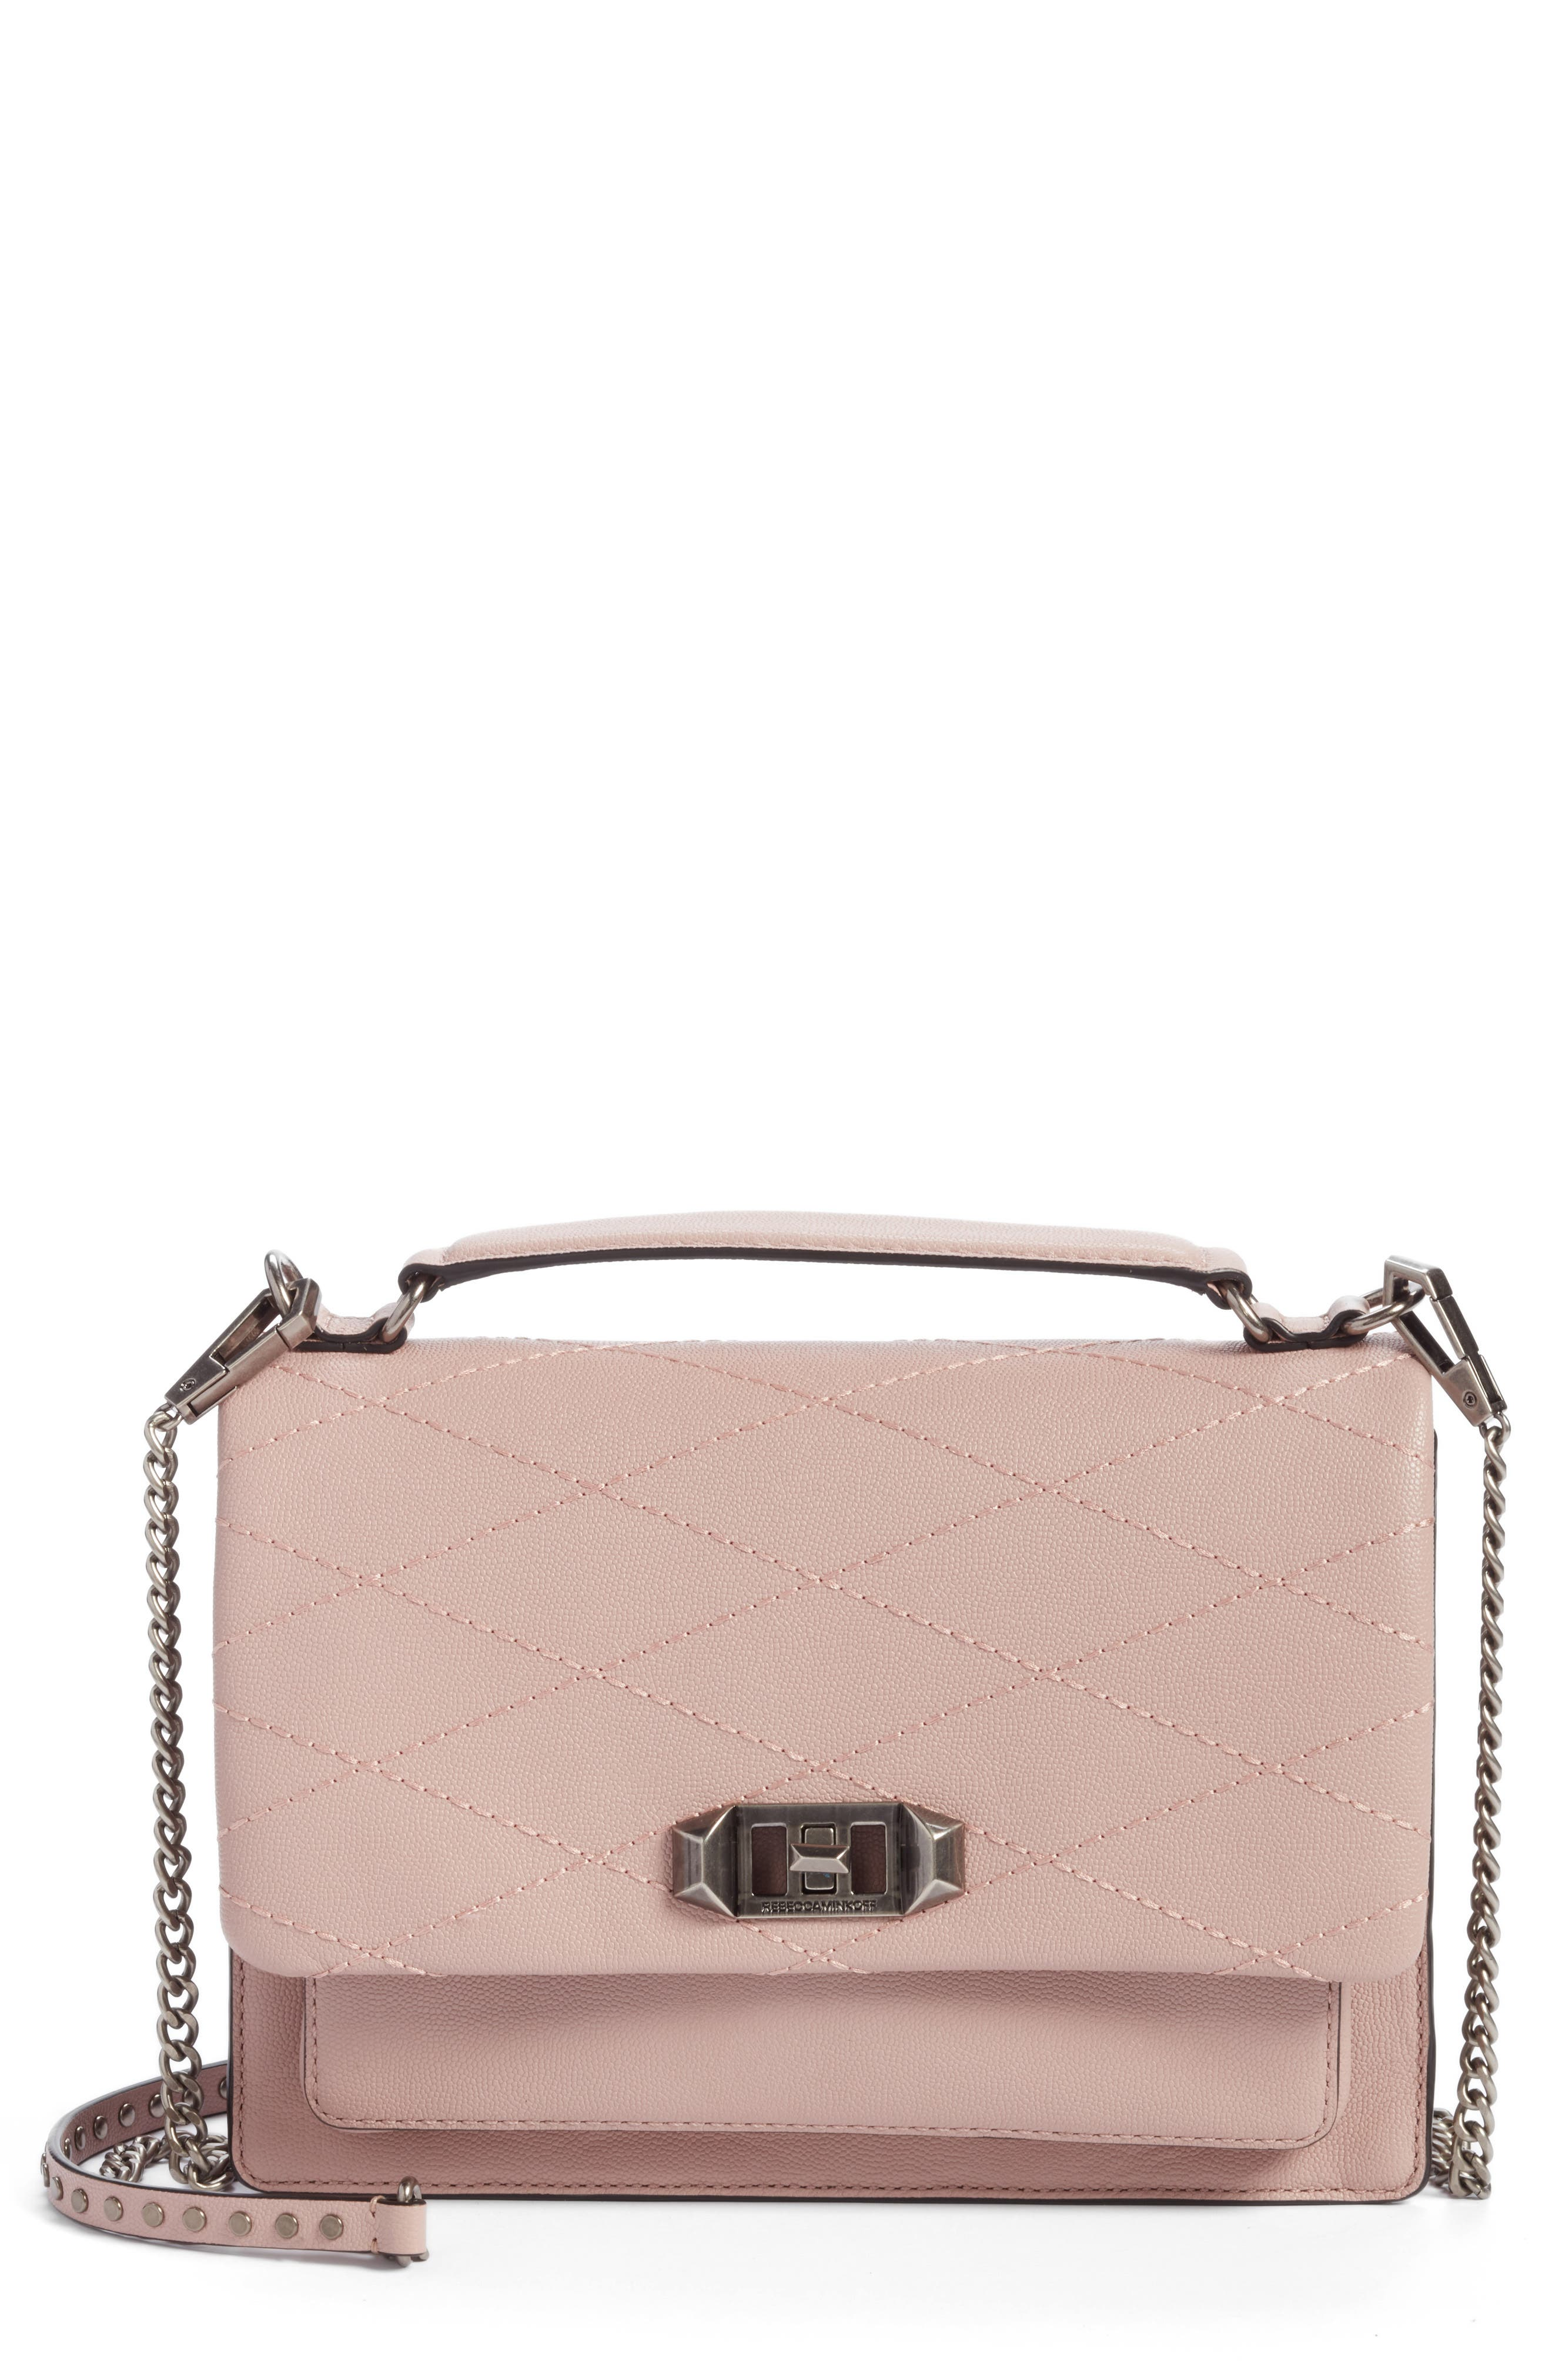 Medium Je T'aime Convertible Leather Crossbody Bag,                         Main,                         color, Vintage Pink